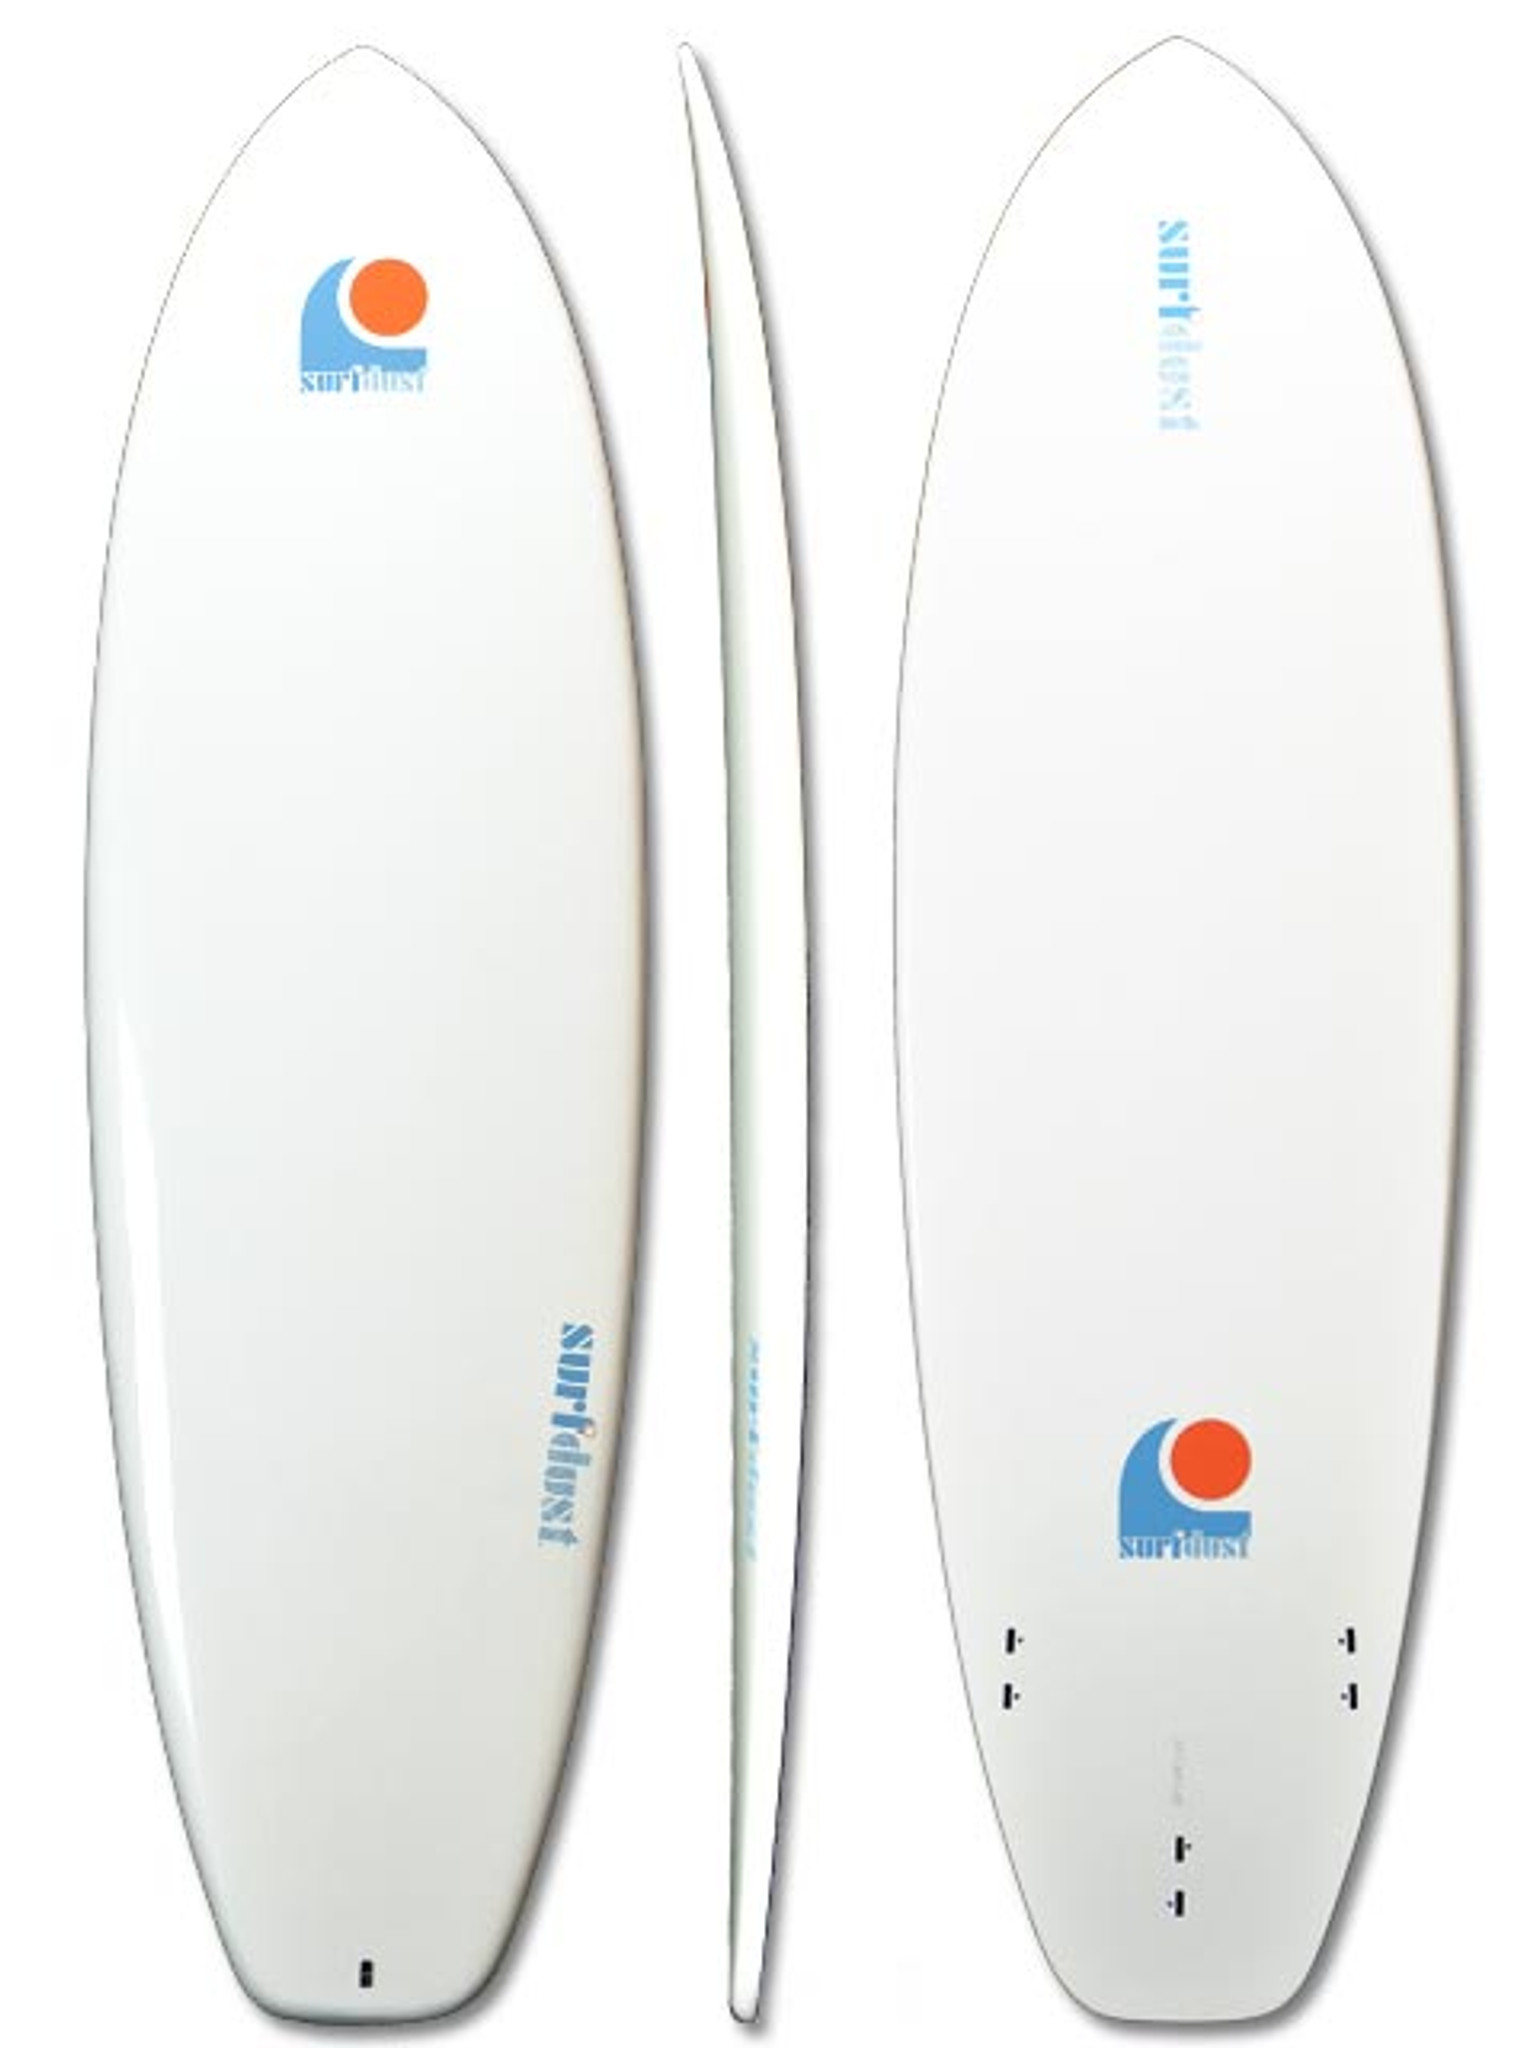 SURFDUST - 6.4ft Mini-Mal Epoxy Surfboard - Surfing